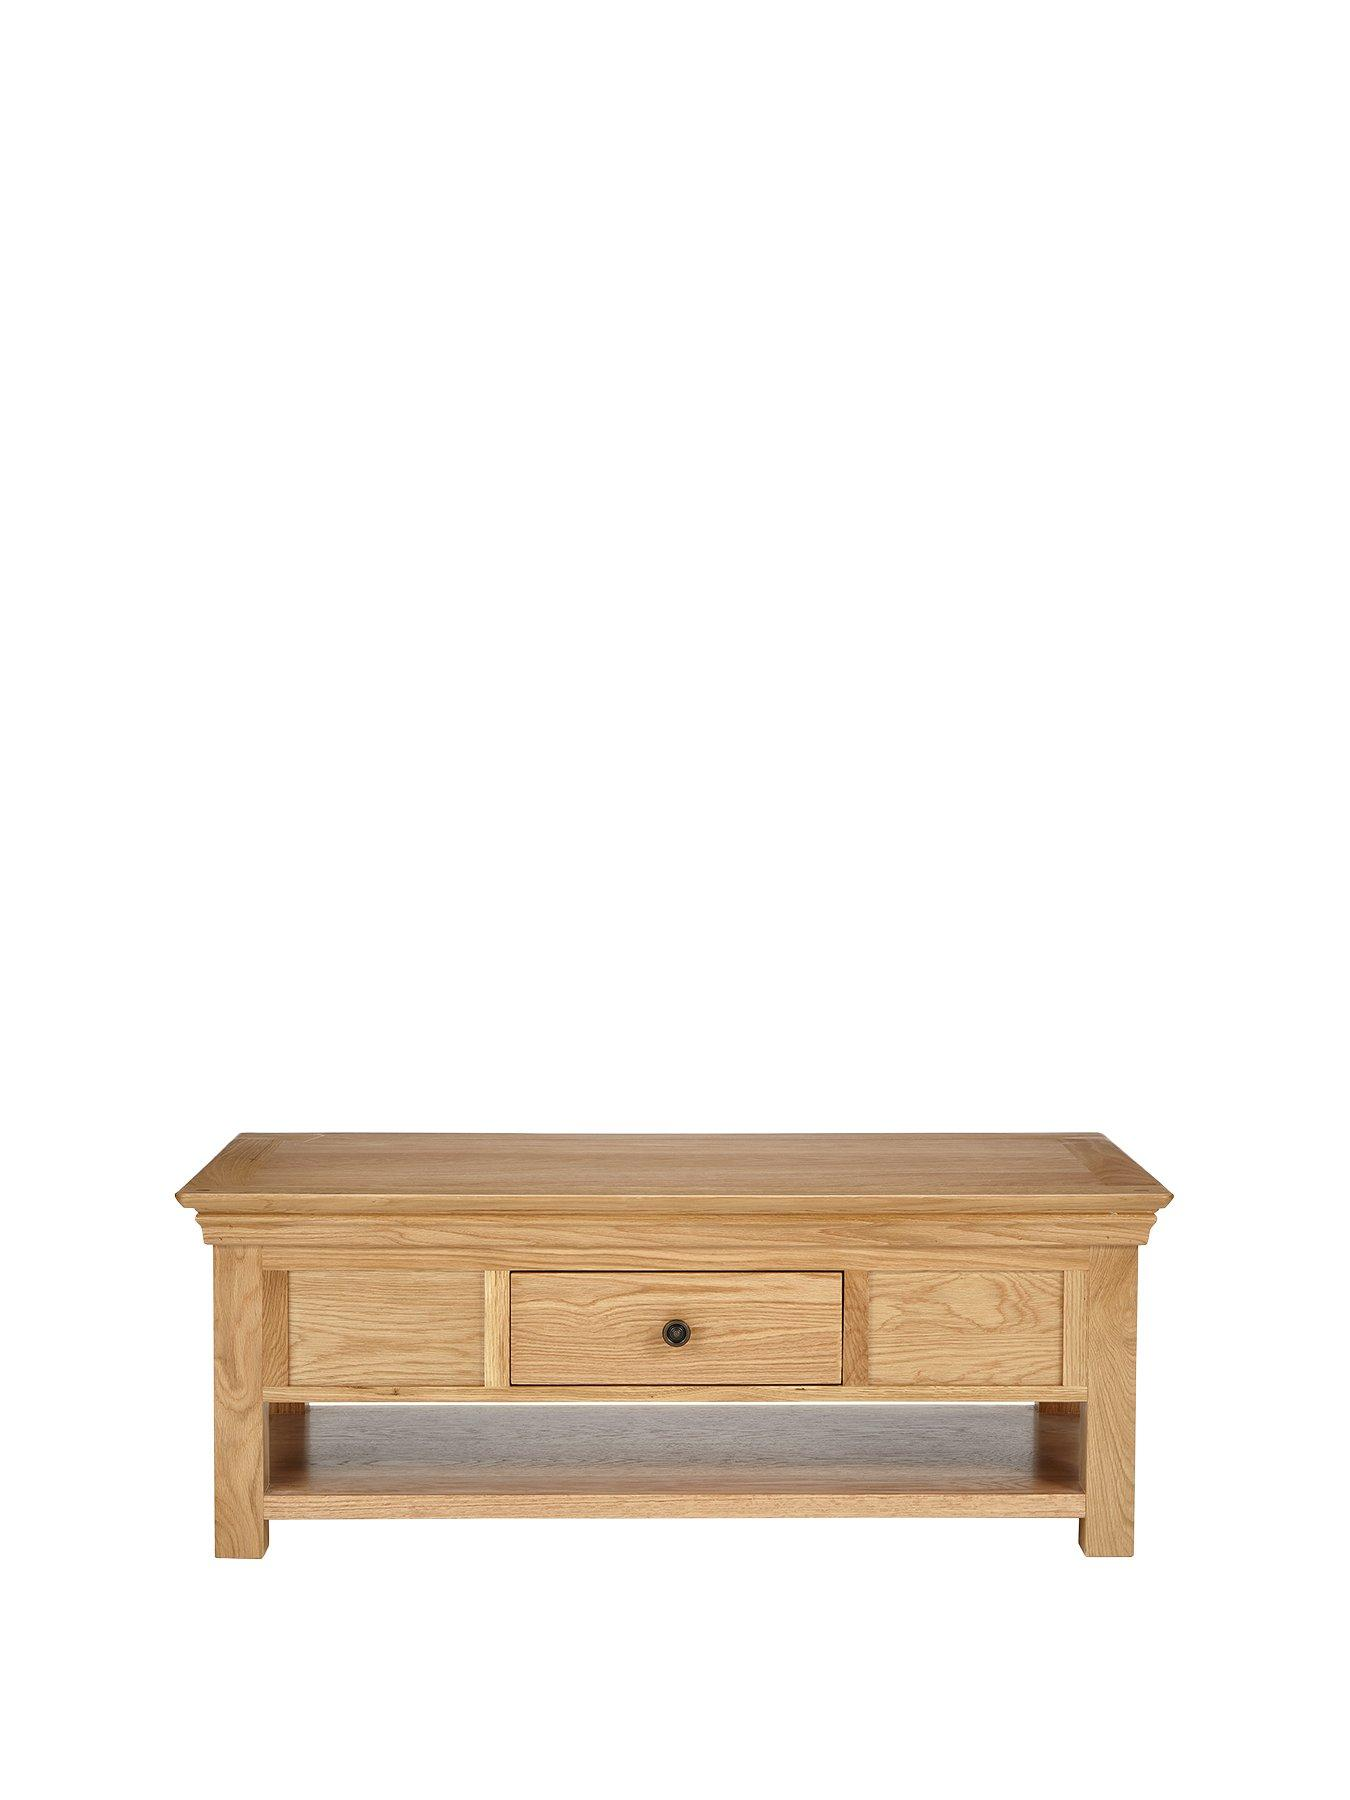 Luxe Collection Luxe Collection   Constance Oak Ready Assembled Coffee Table  | Littlewoods.com